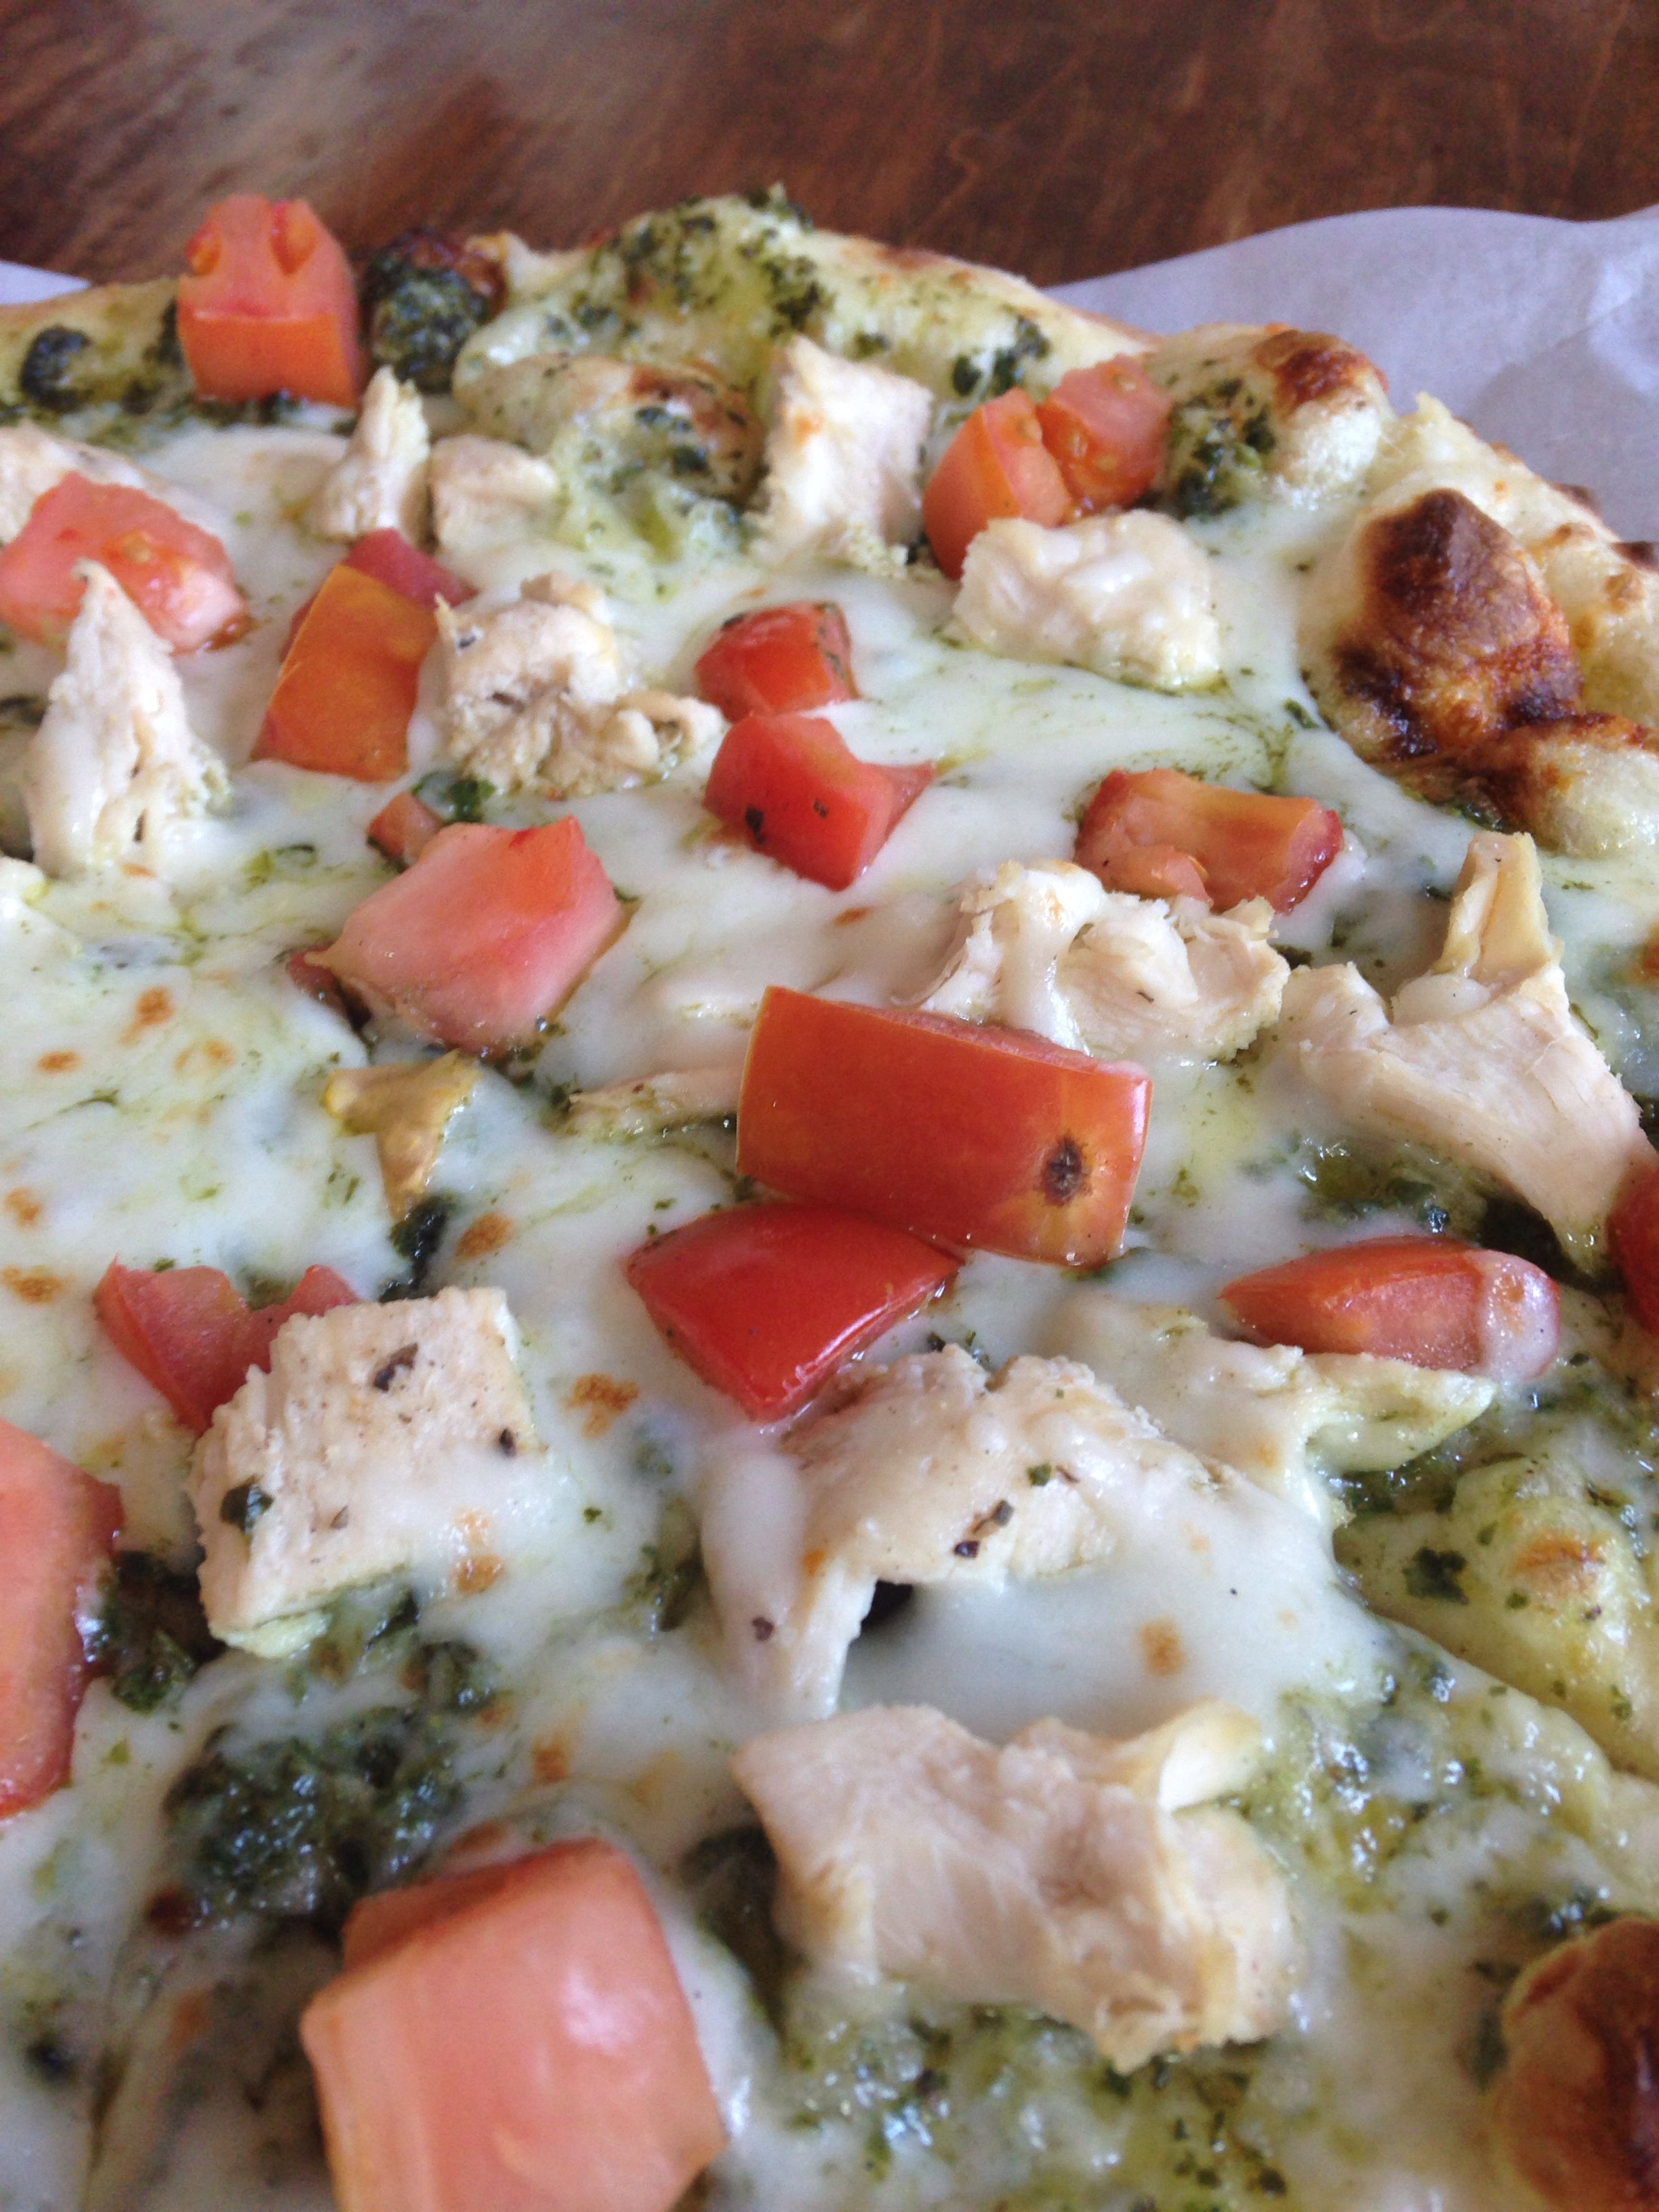 Chicken Pesto Pizza From Farmers Table In Grantham NH Whats For - Farmers table nh